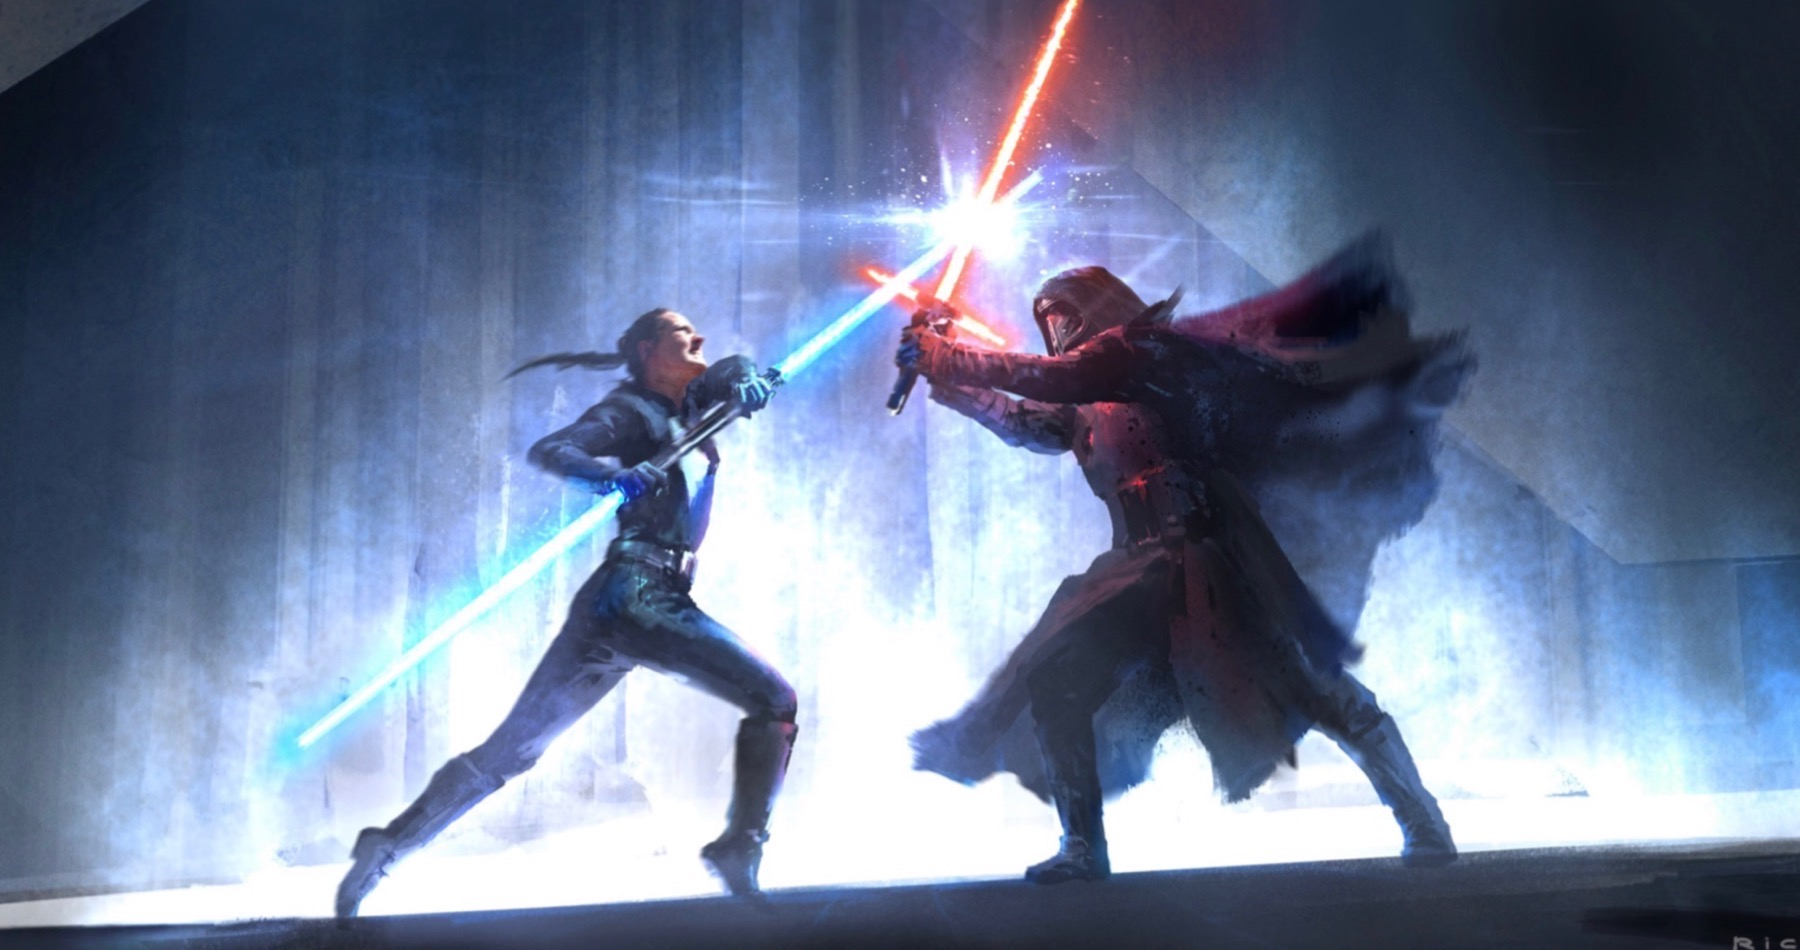 Insane Rise Of Skywalker Concept Art Reveals Darth Vader Wildly Different Looking Story Brobible